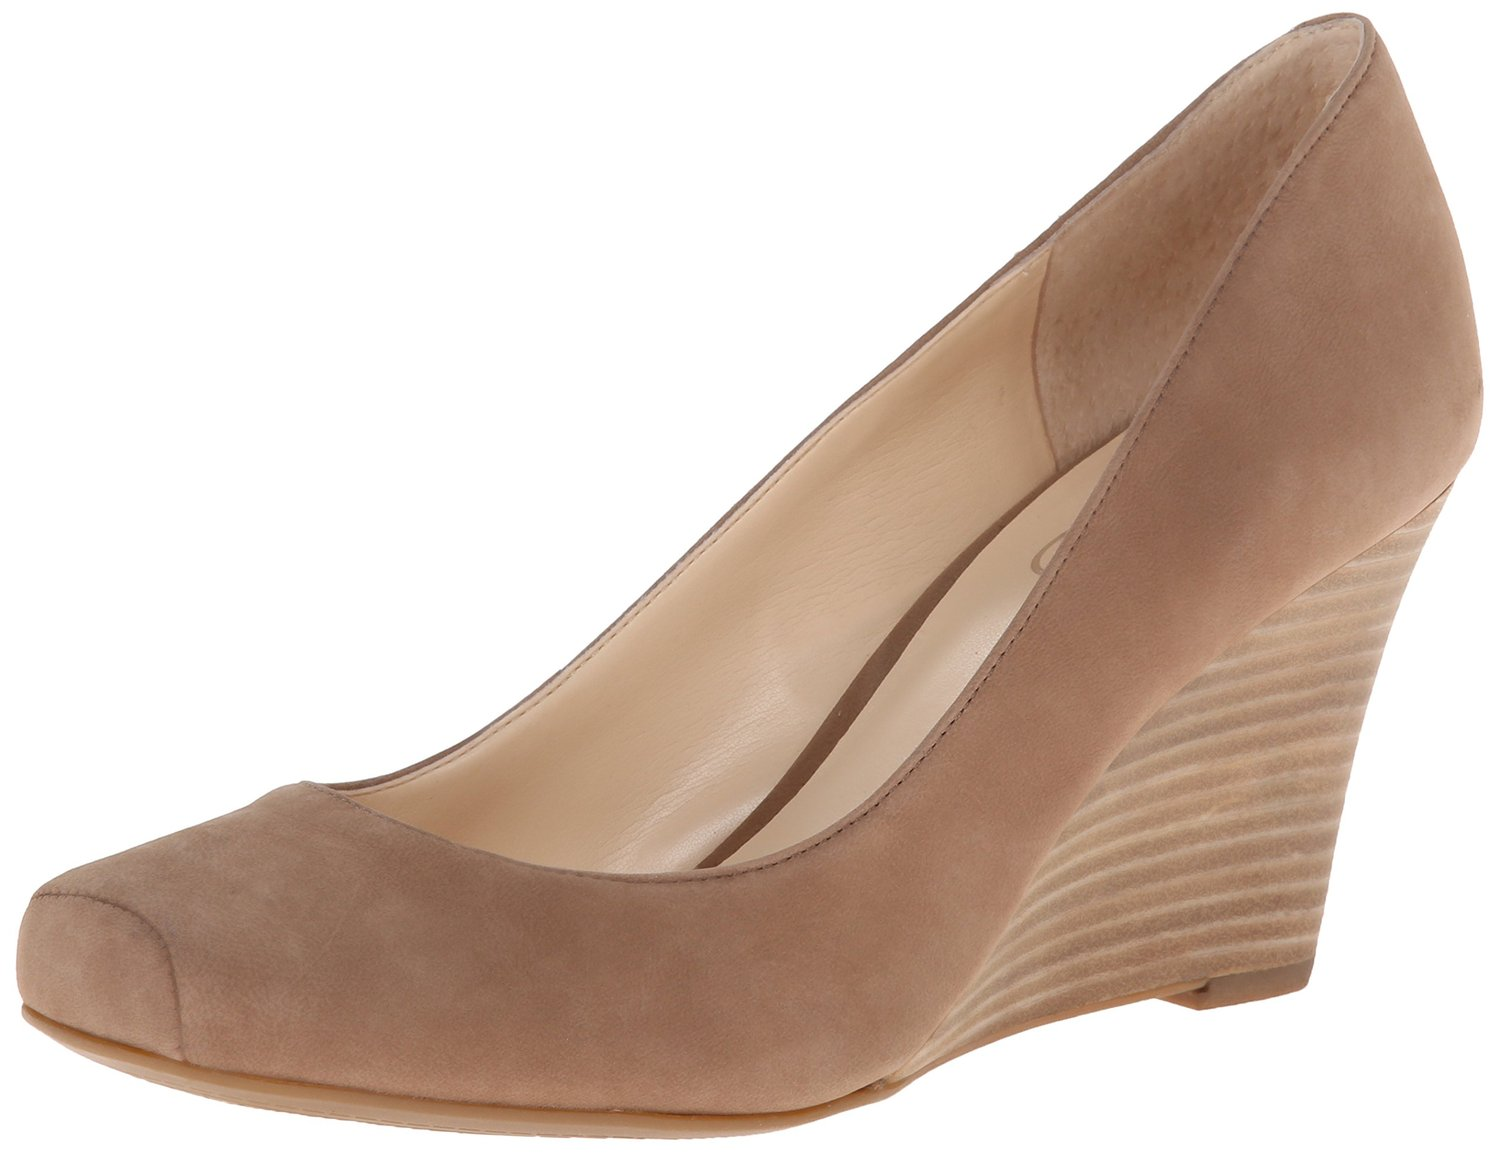 65c360e251d Jessica Simpson Salley Wedge Pump Totally Taupe